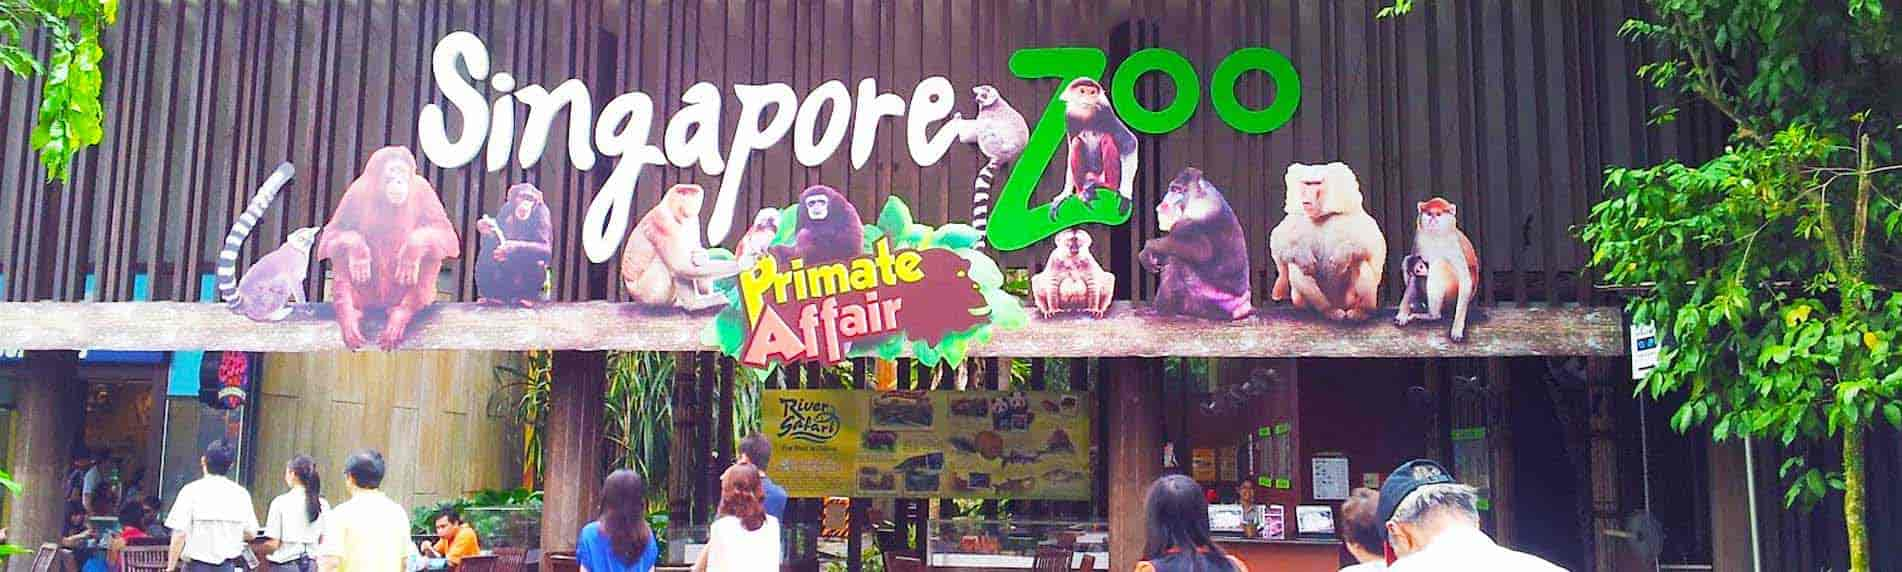 singapore zoo with breakfast